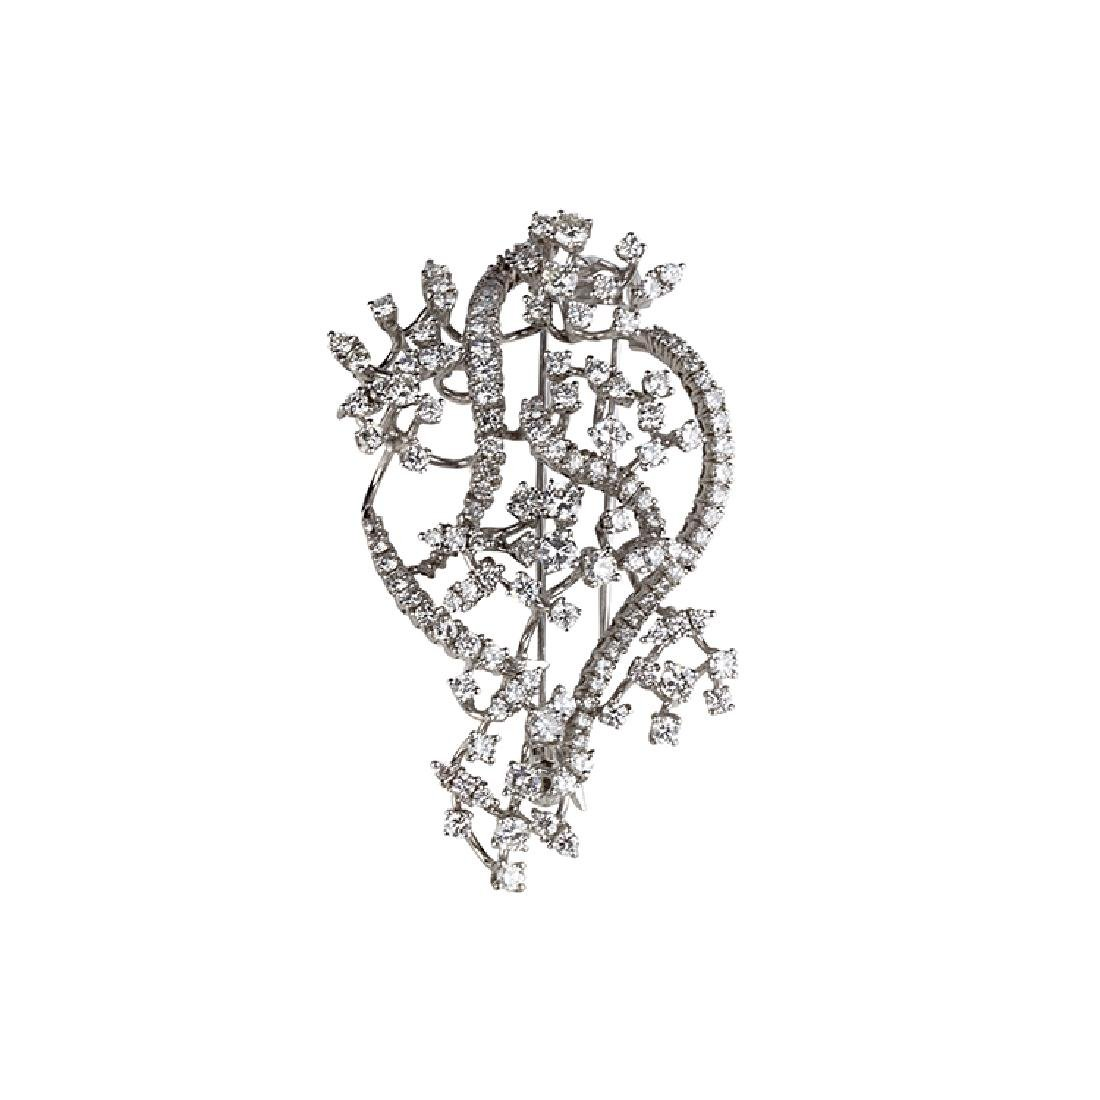 White gold brooch with brilliants